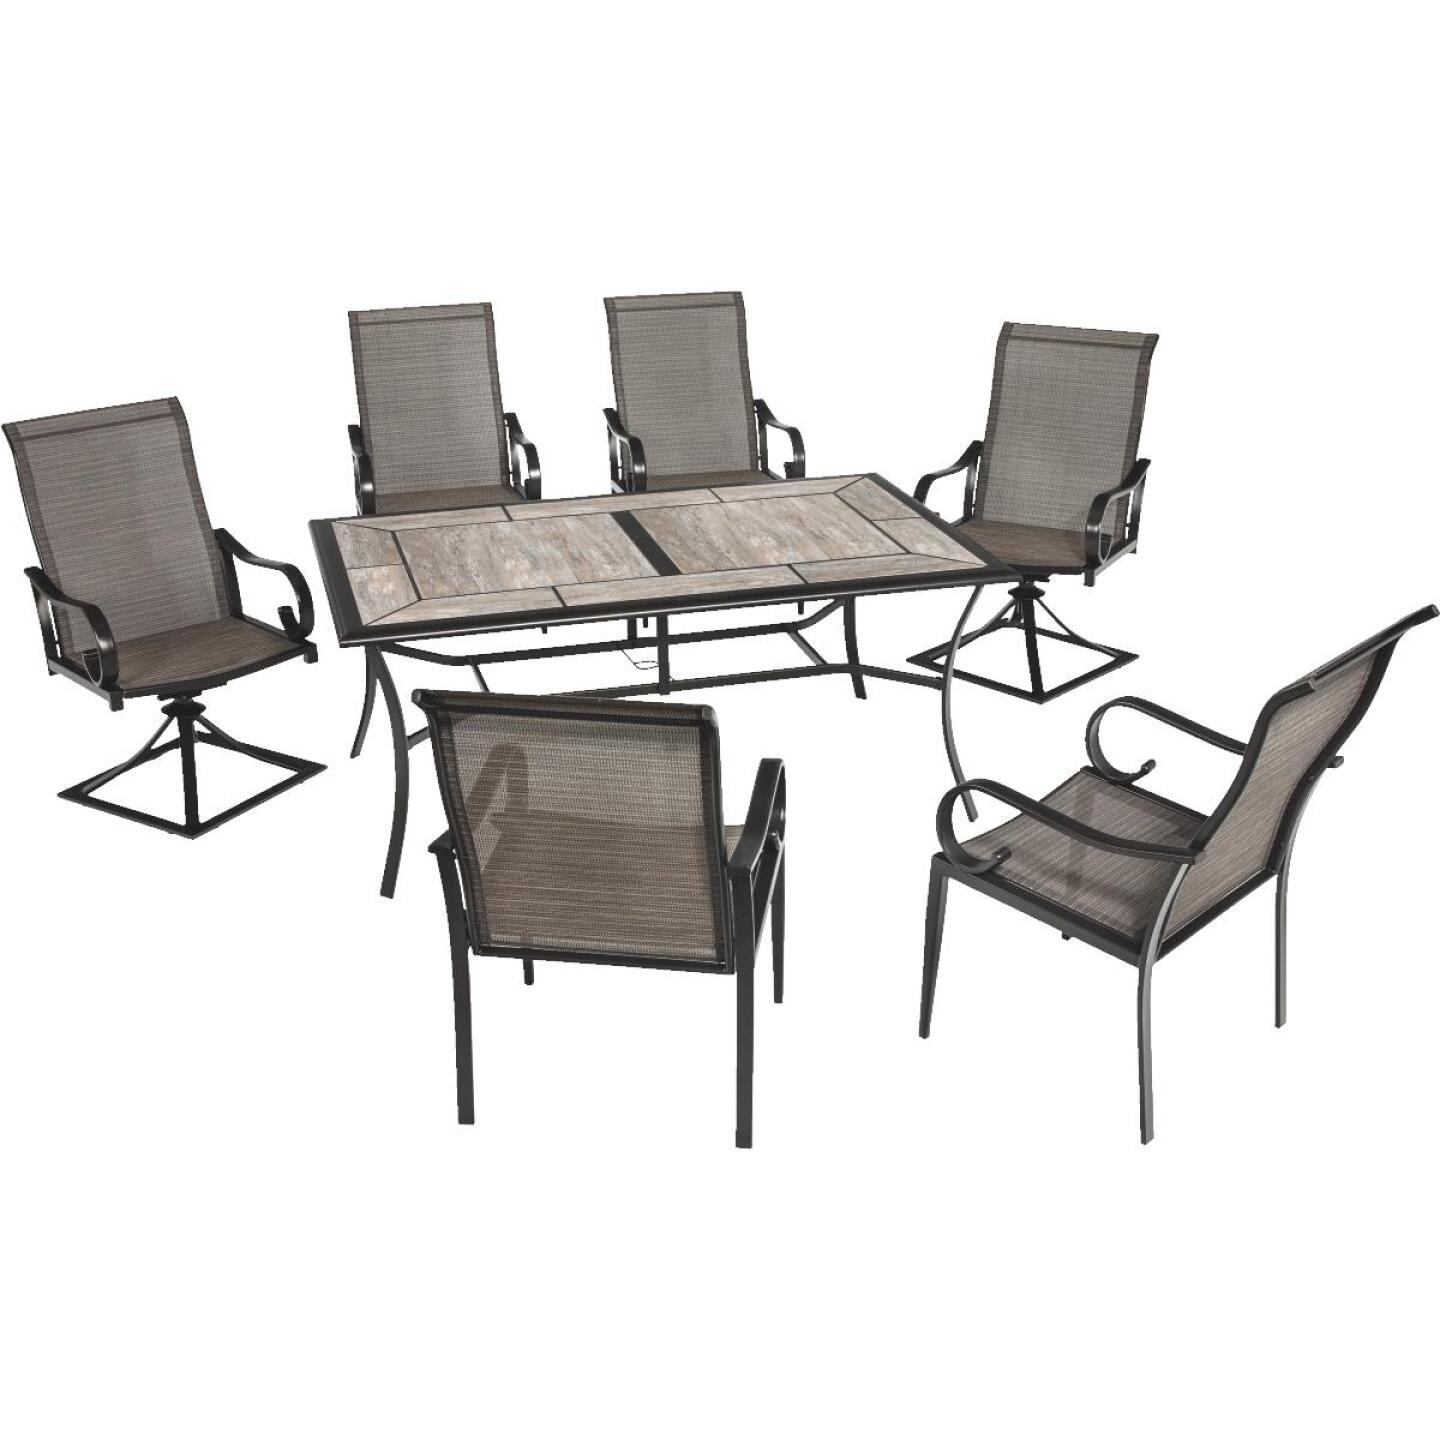 Outdoor Expressions Berkshire 7-Piece Dining Set Image 105